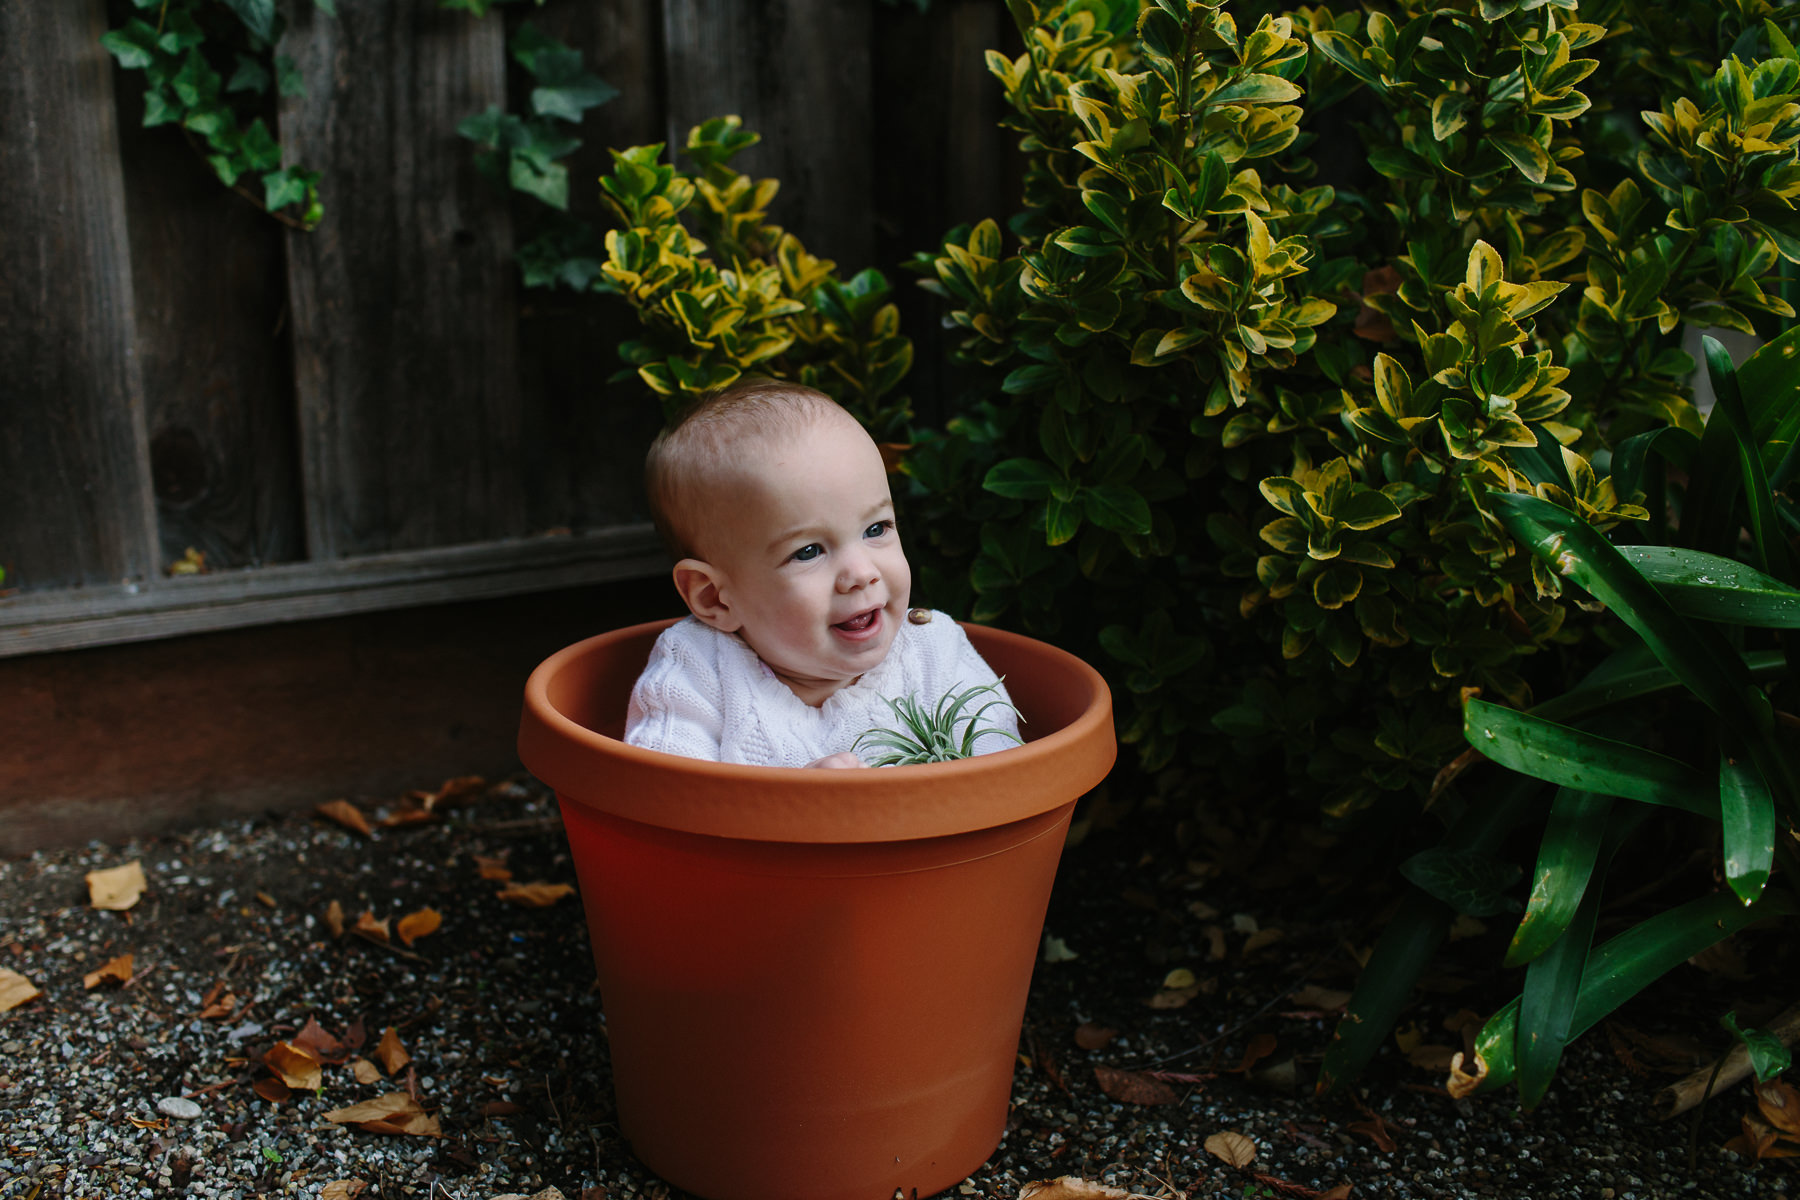 the-curiosity-project-blog-halloween-plant-lady-costumes (3 of 13).jpg